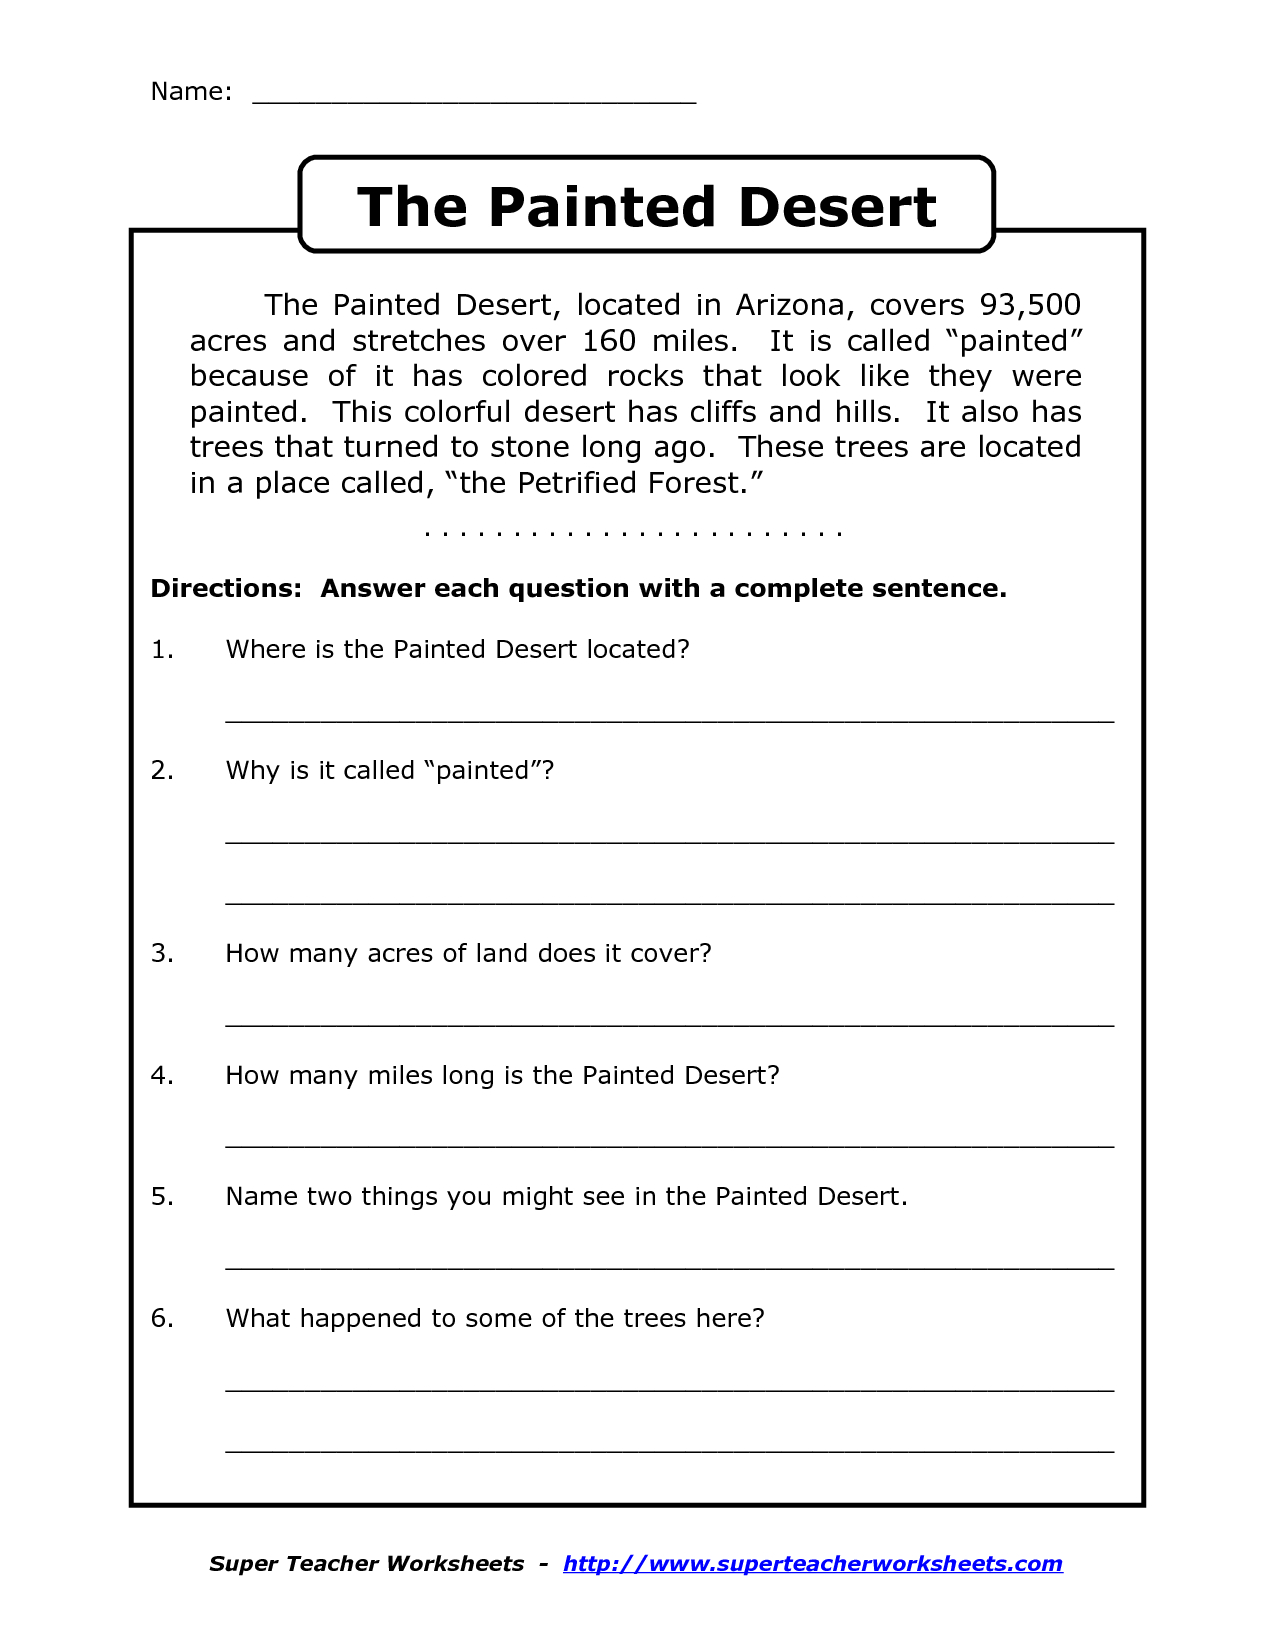 Reading Worksheets For 4Th Grade   Reading Comprehension Worksheets - Free Printable Reading Comprehension Worksheets Grade 5